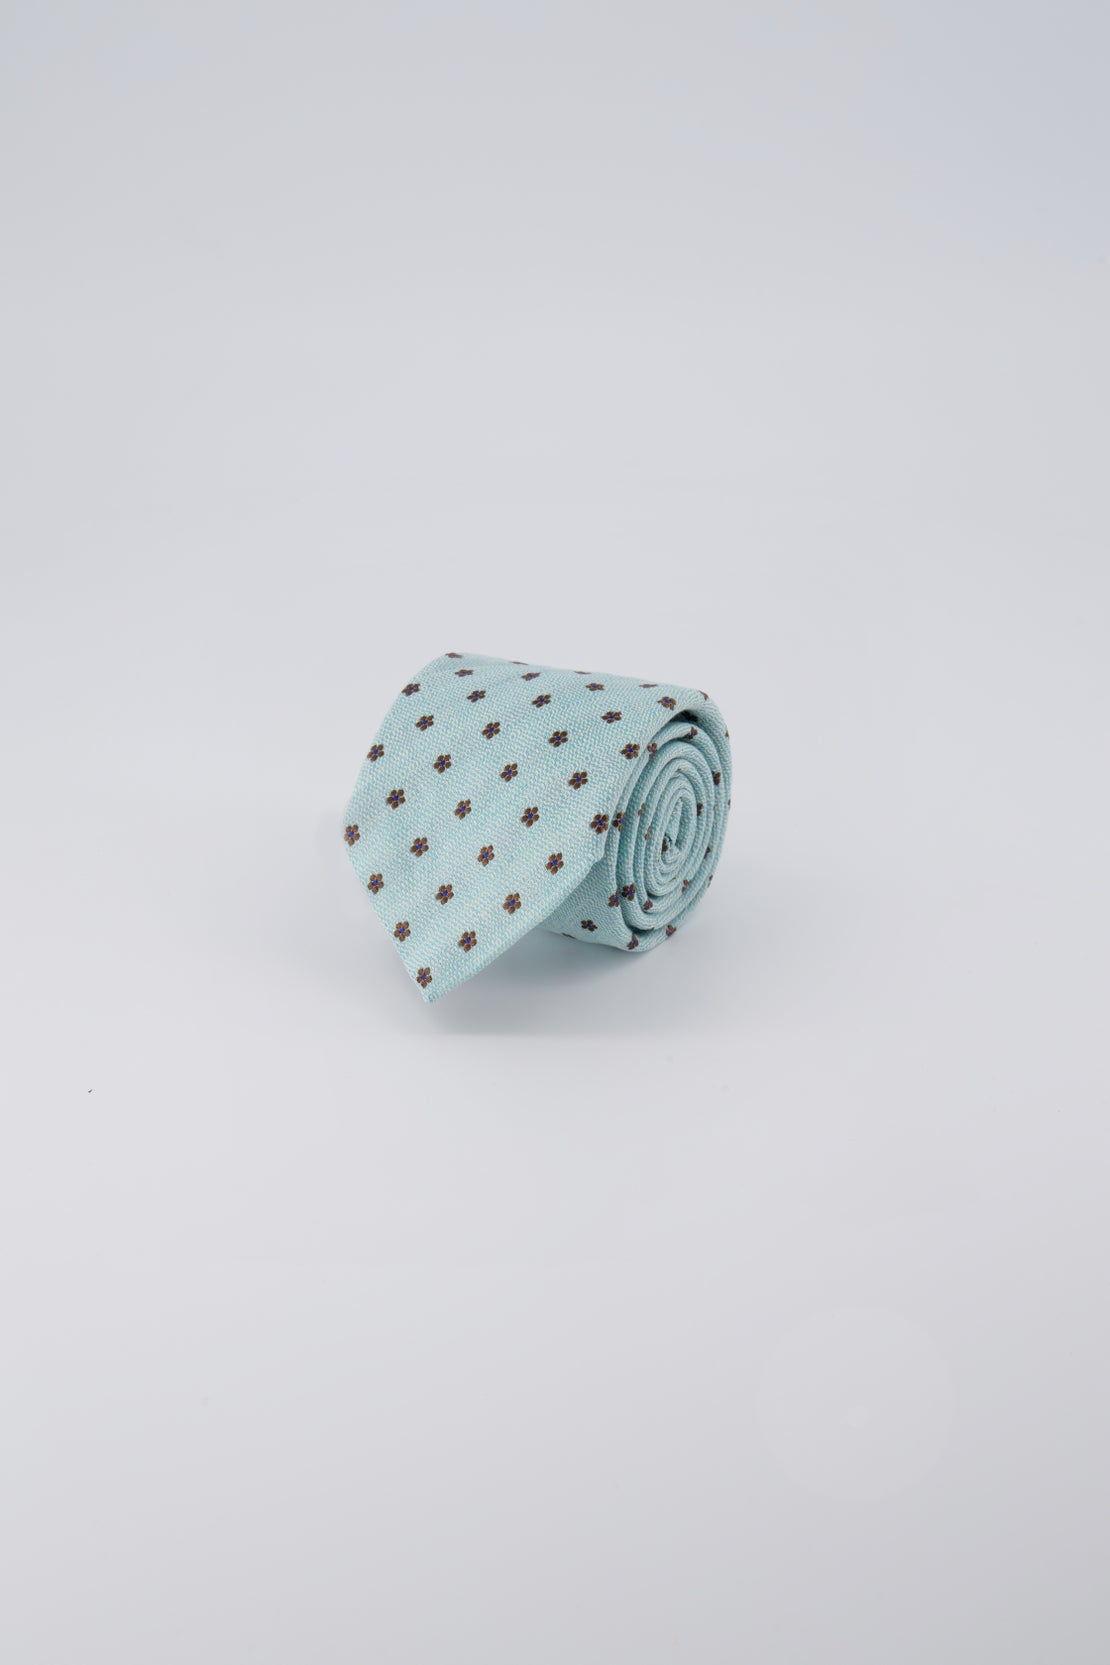 Teal With Small Chocolate Flower Tie